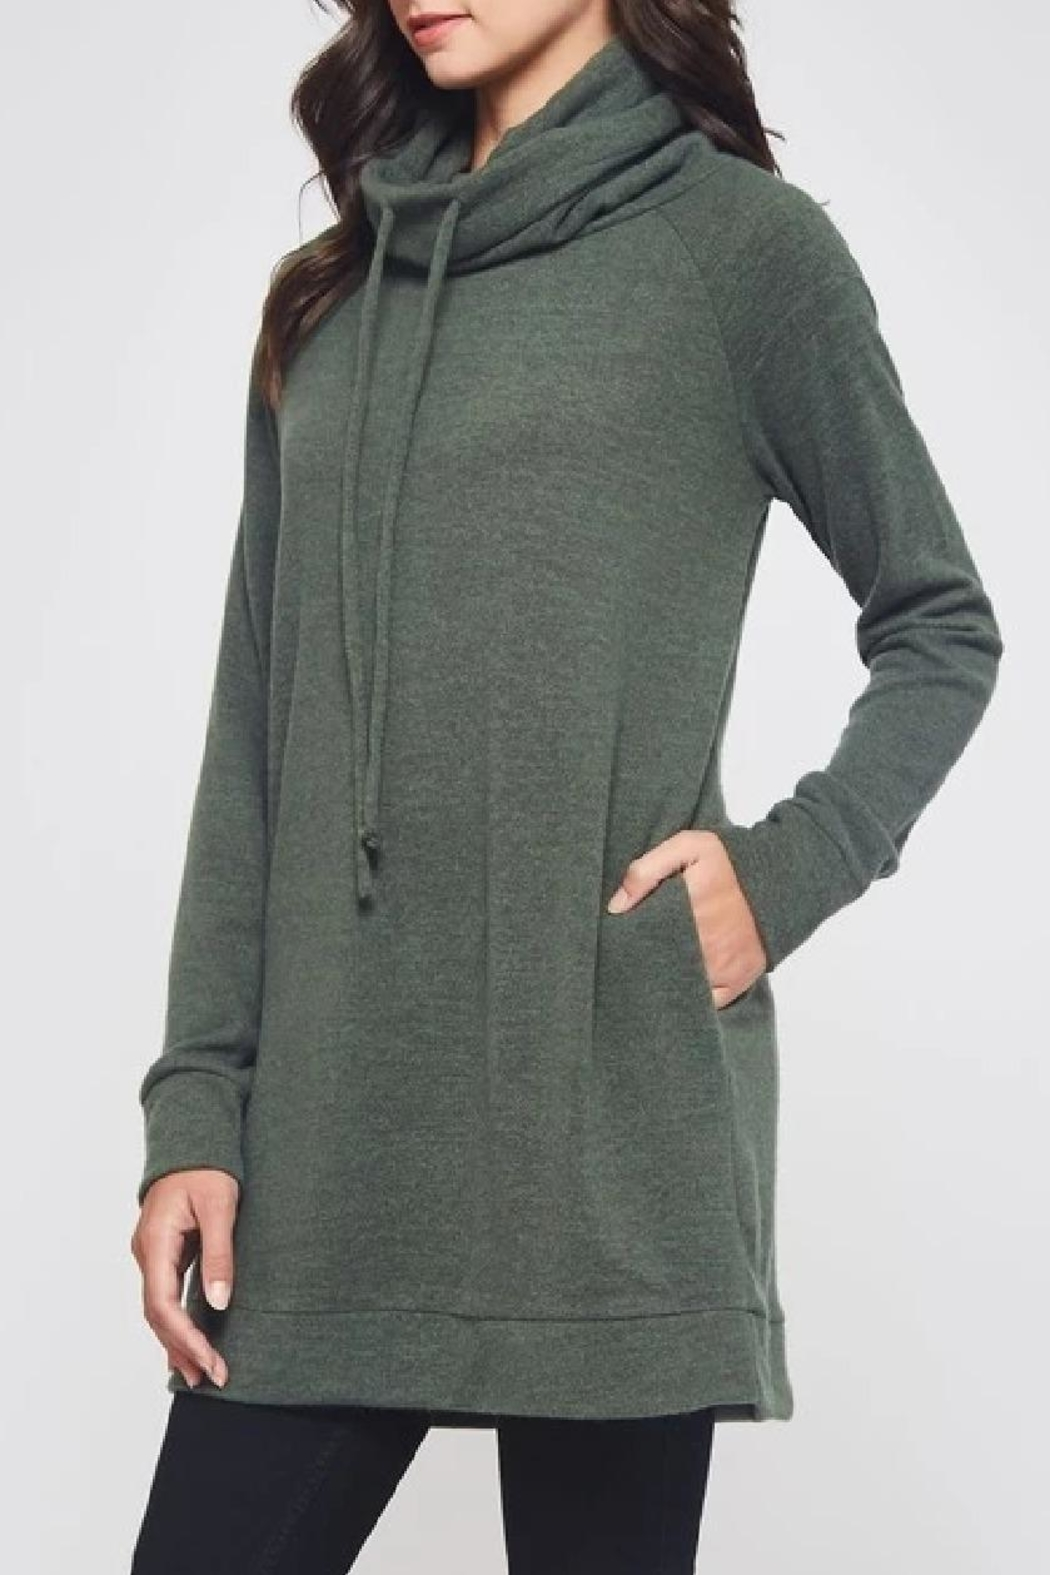 Beeson River Cowl Tunic-Pocket Top - Front Full Image